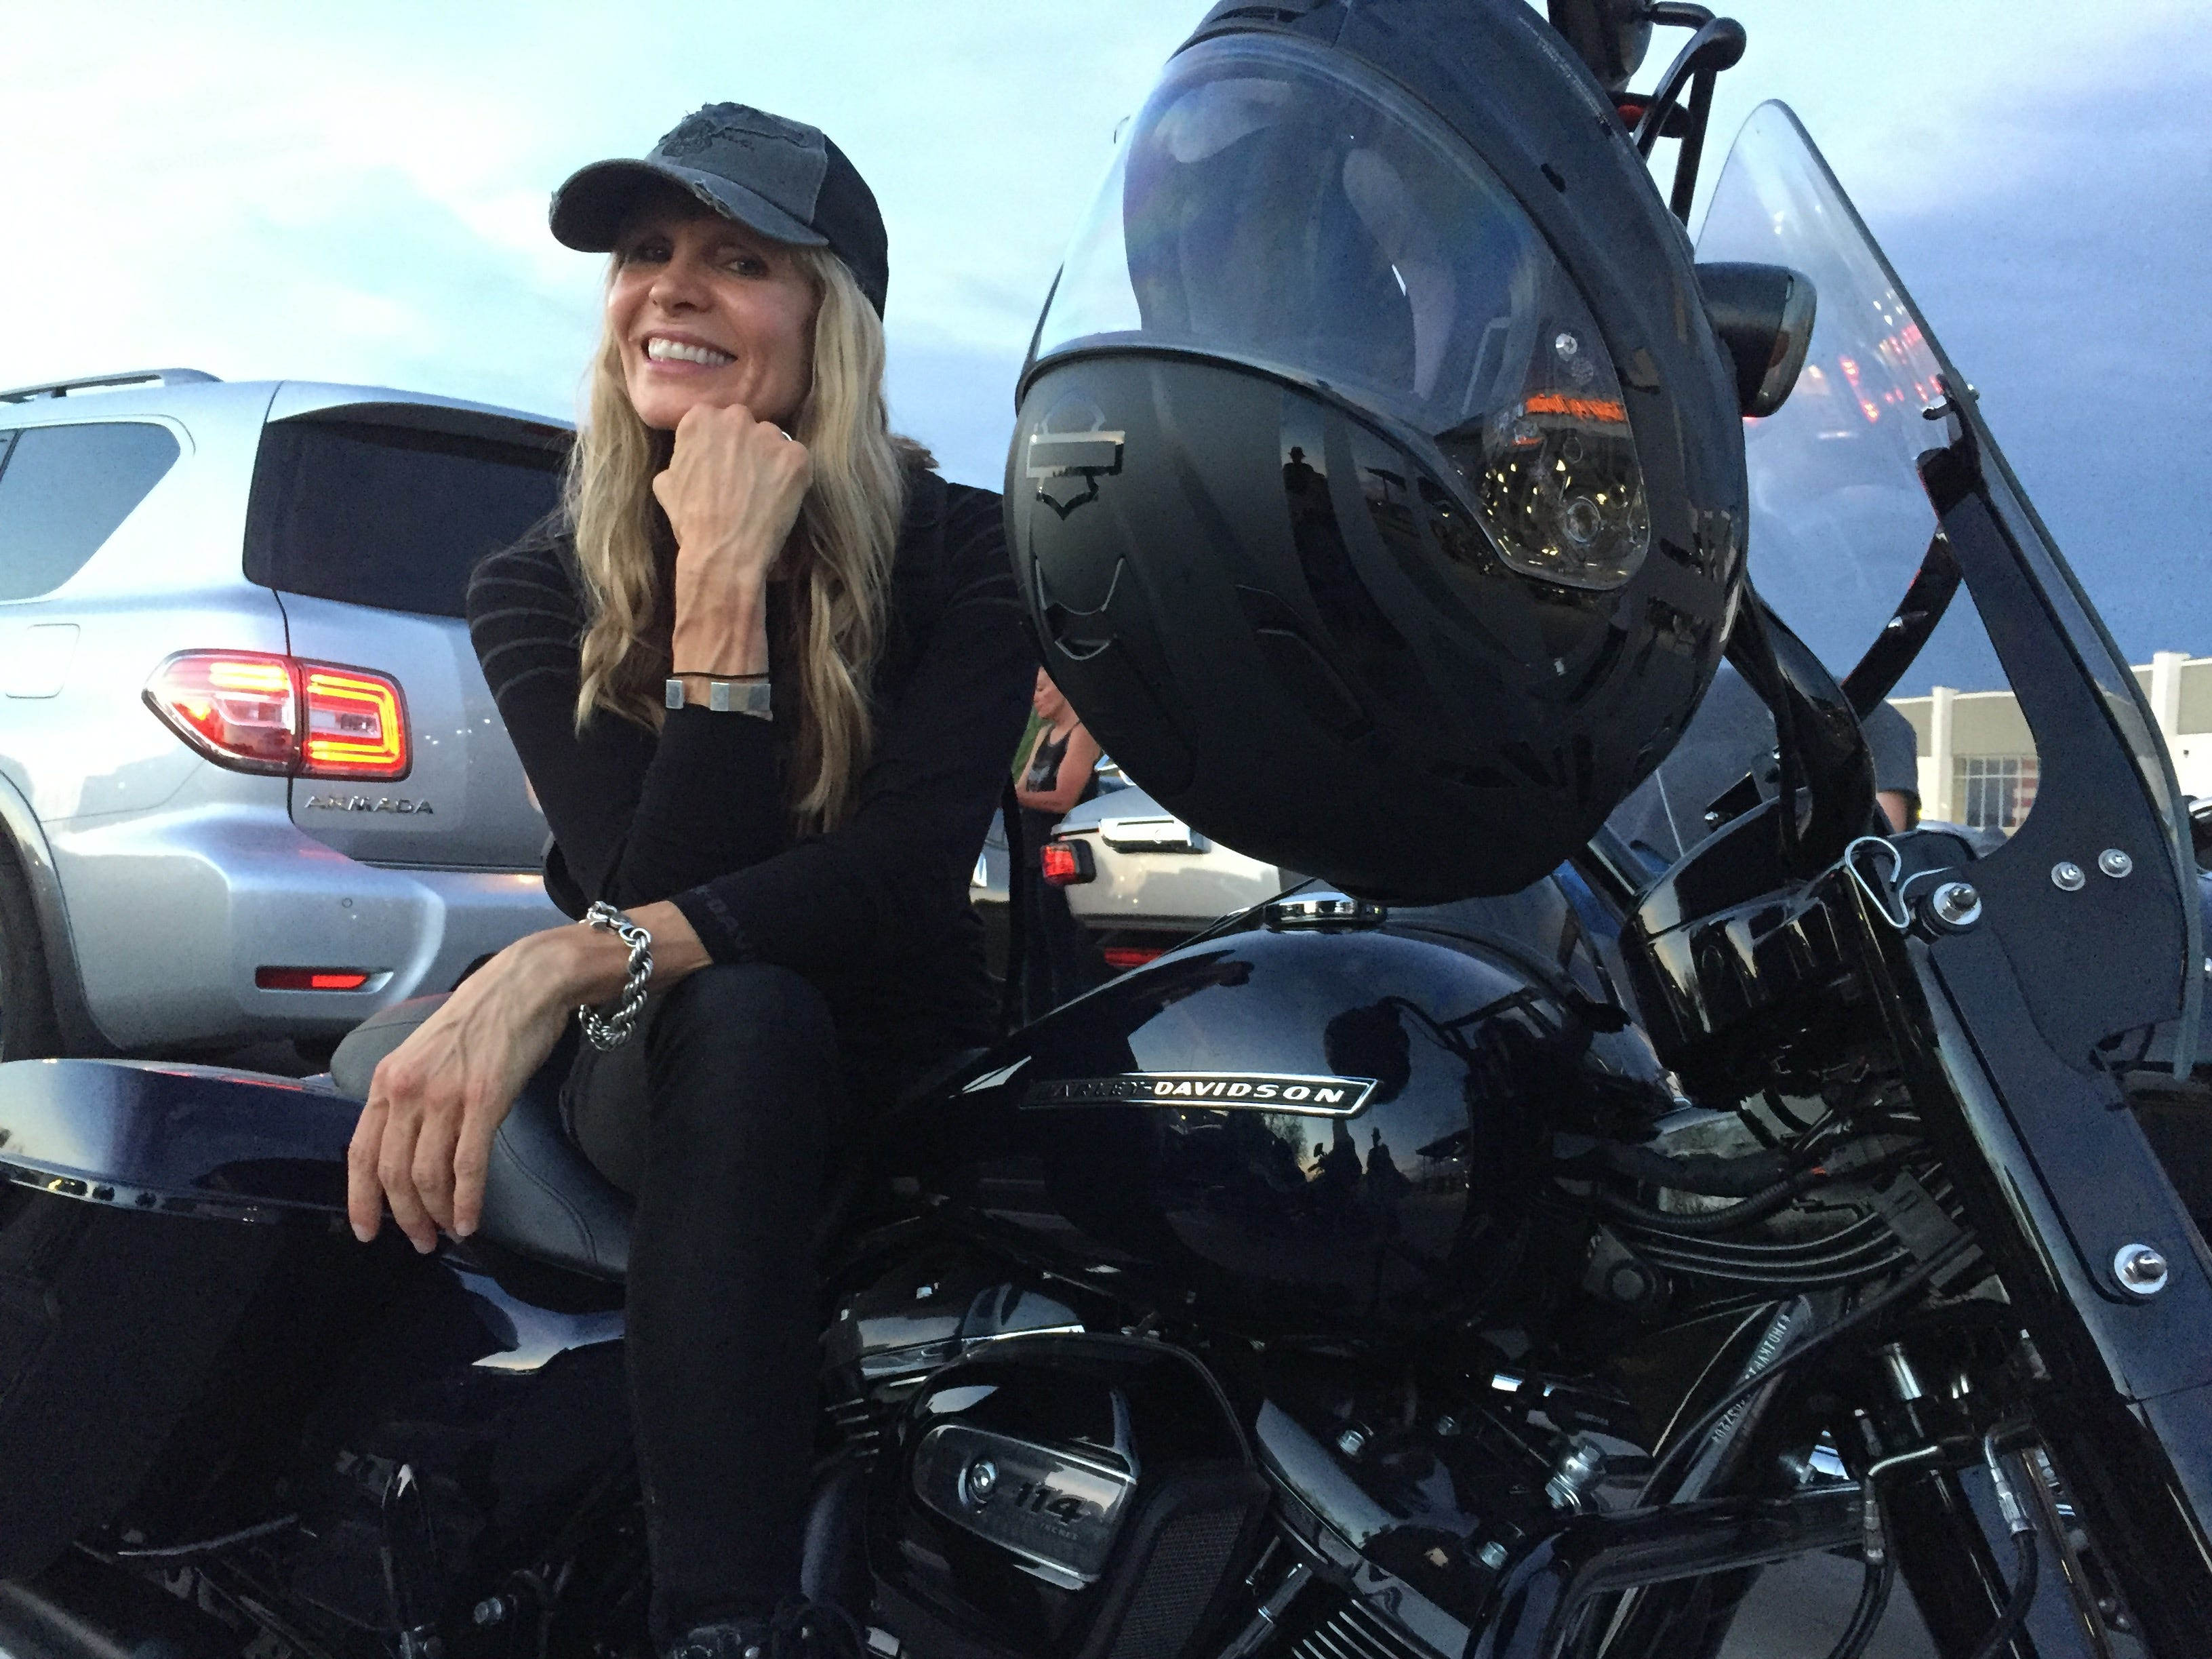 "Karen Davidson, great-granddaughter of Harley-Davidson co-founder William A. Davidson and creative director of Harley-Davidson MotorClothes, arrived in Scottsdale, Arizona, around 7 p.m. Aug. 21 on her new 2019 Road King. It had ""zero miles"" when she picked it up in San Diego, she said. Davidson and her brother, Bill, are participating in the nine-day Harley-Davidson 115th anniversary ride from San Diego to Milwaukee. Next stop: Gallup, N.M."